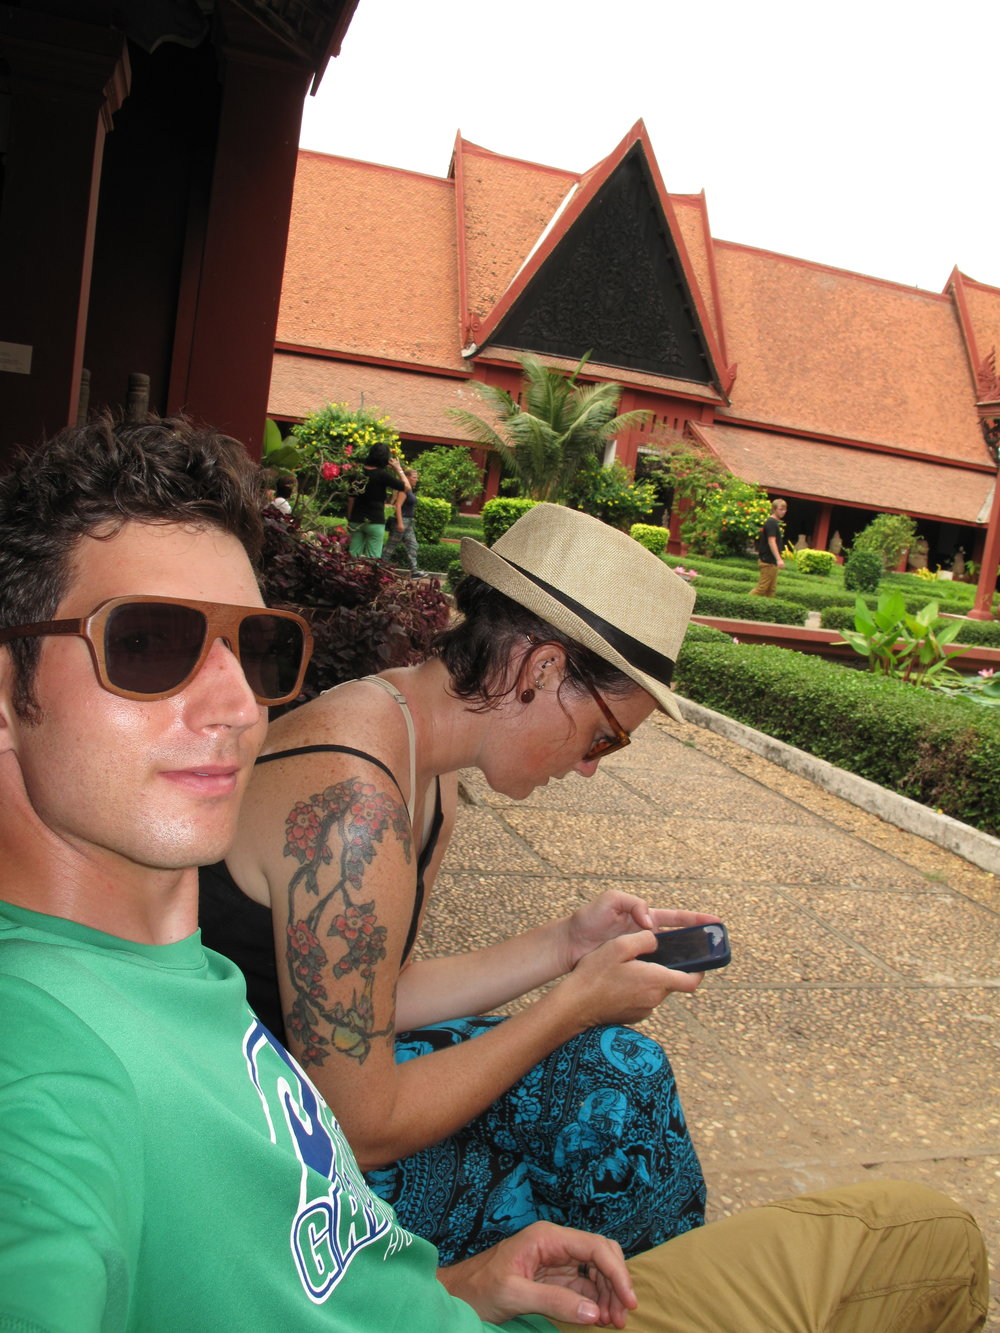 Incredibly sweaty selfie, Grand Palace, Phnom Penh